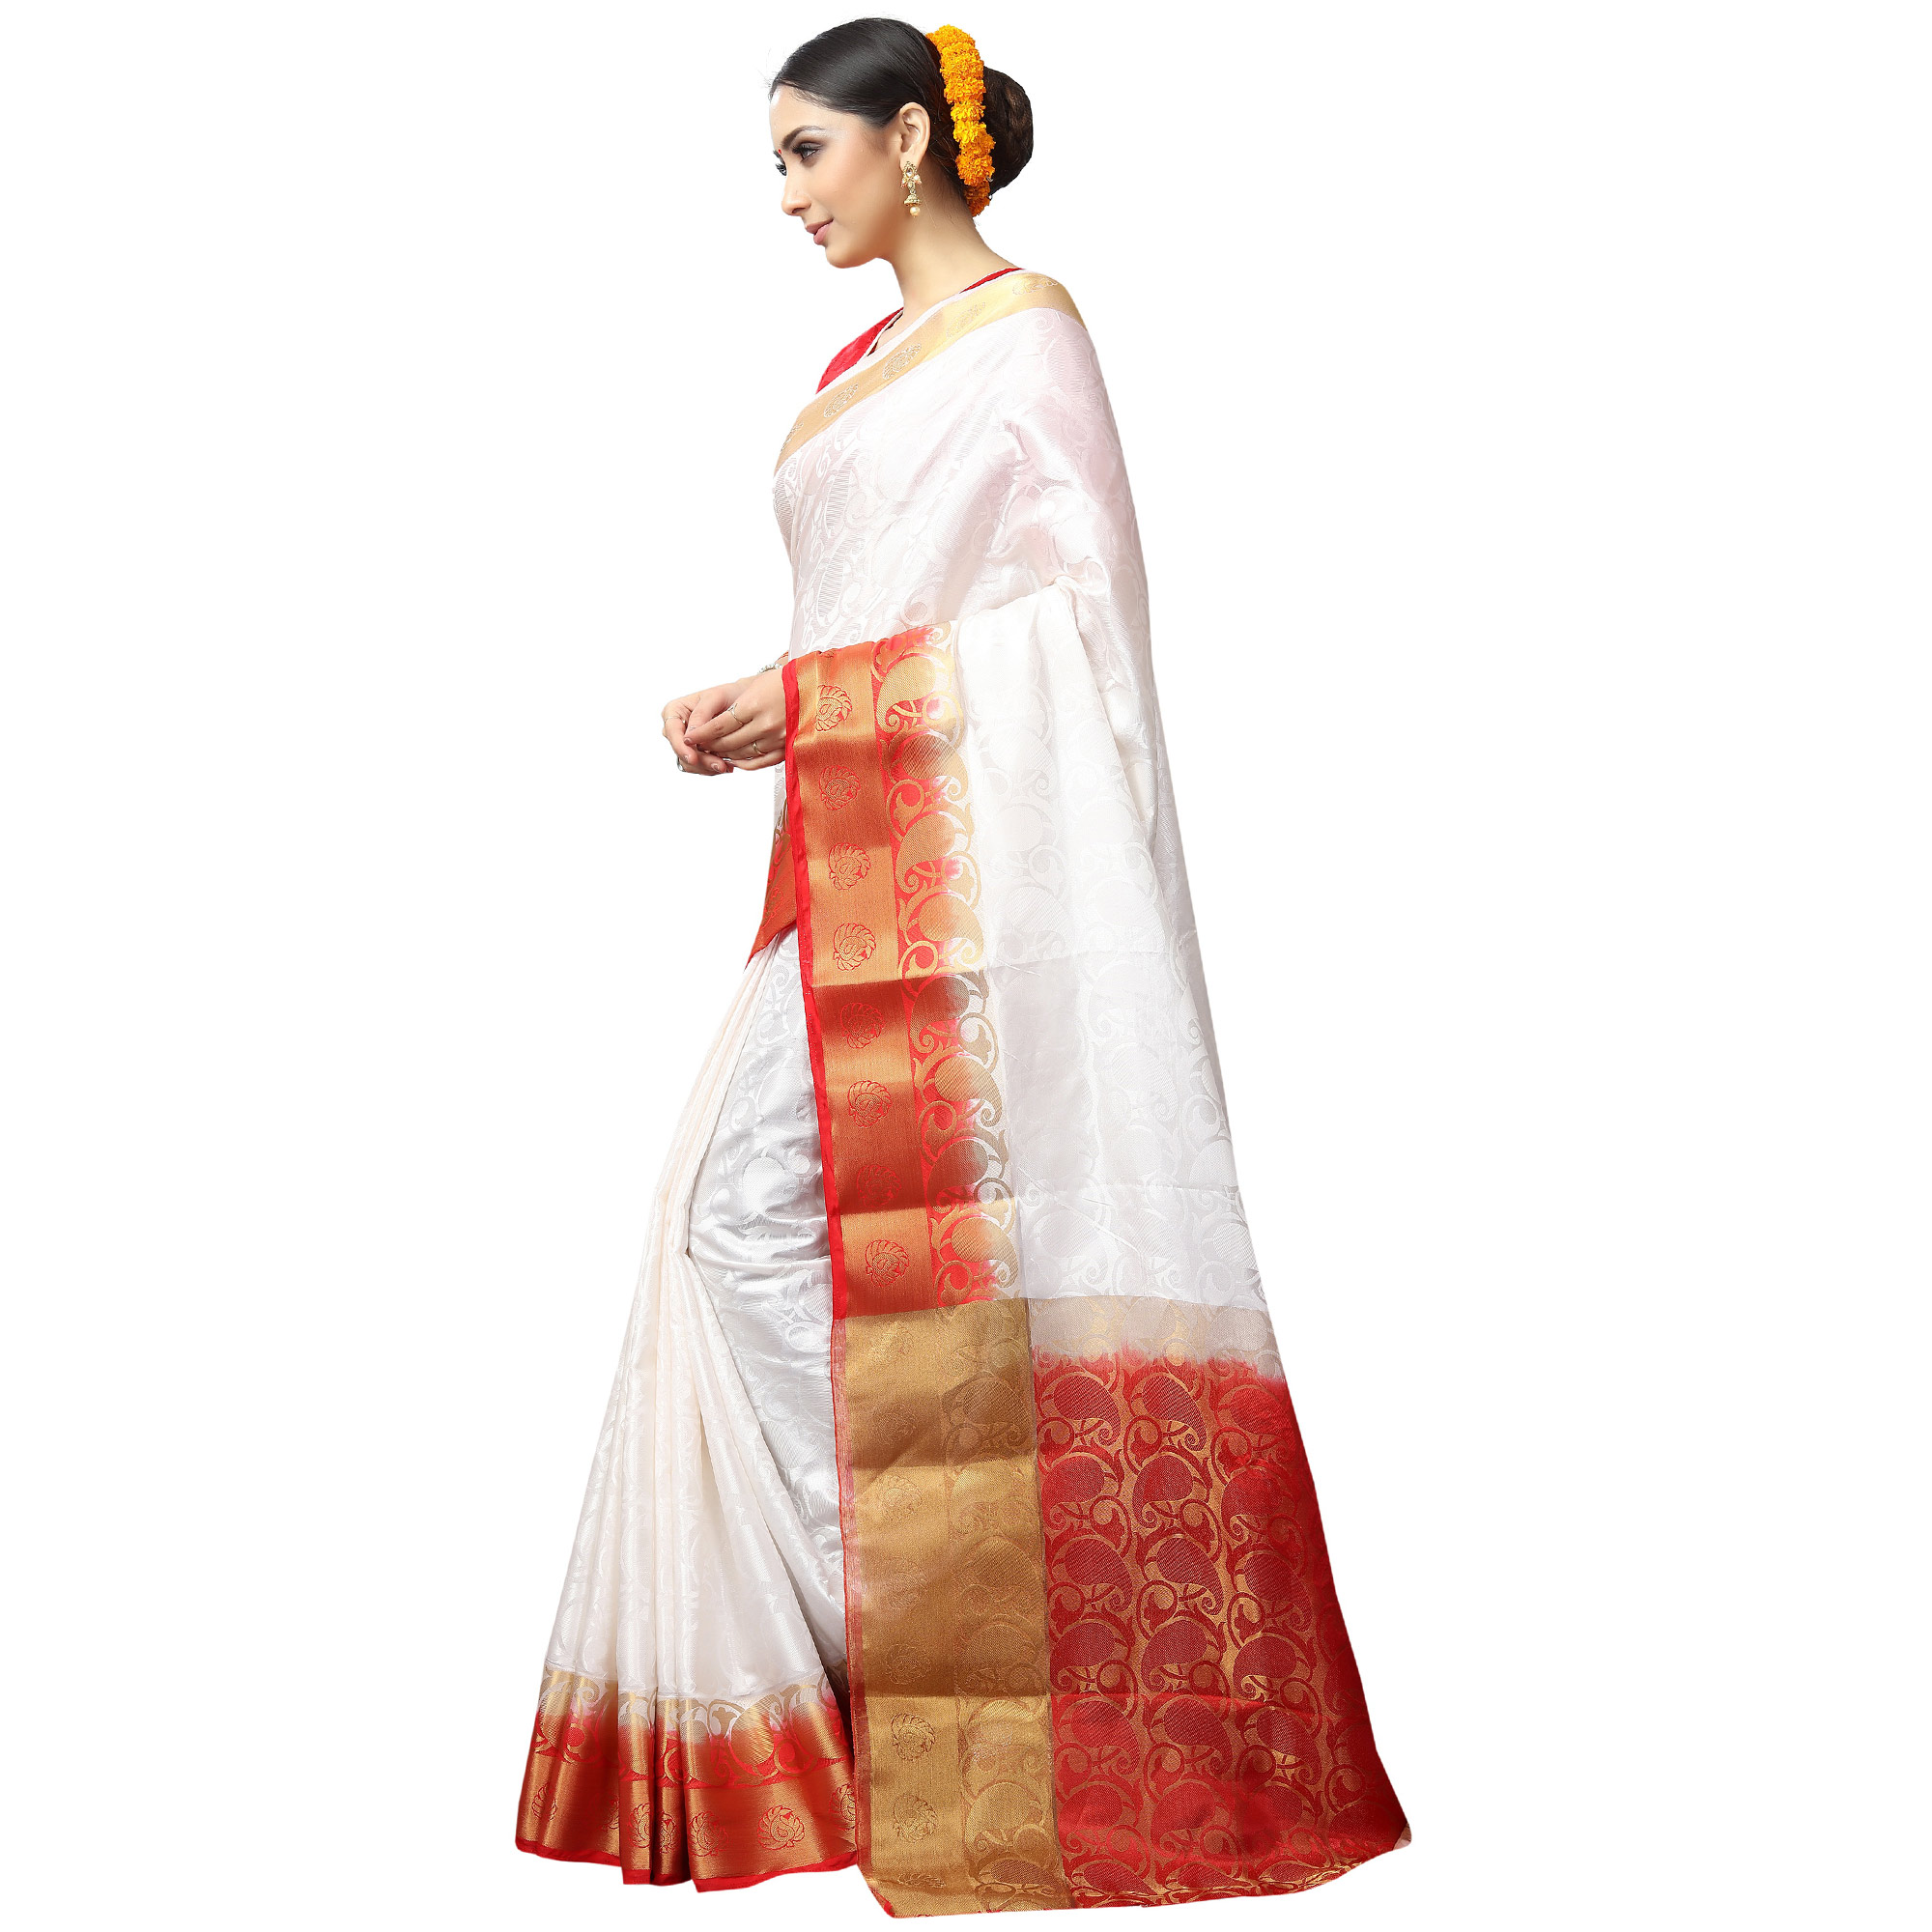 Appealing White Colored Festive Wear Woven Jacquard Silk Saree